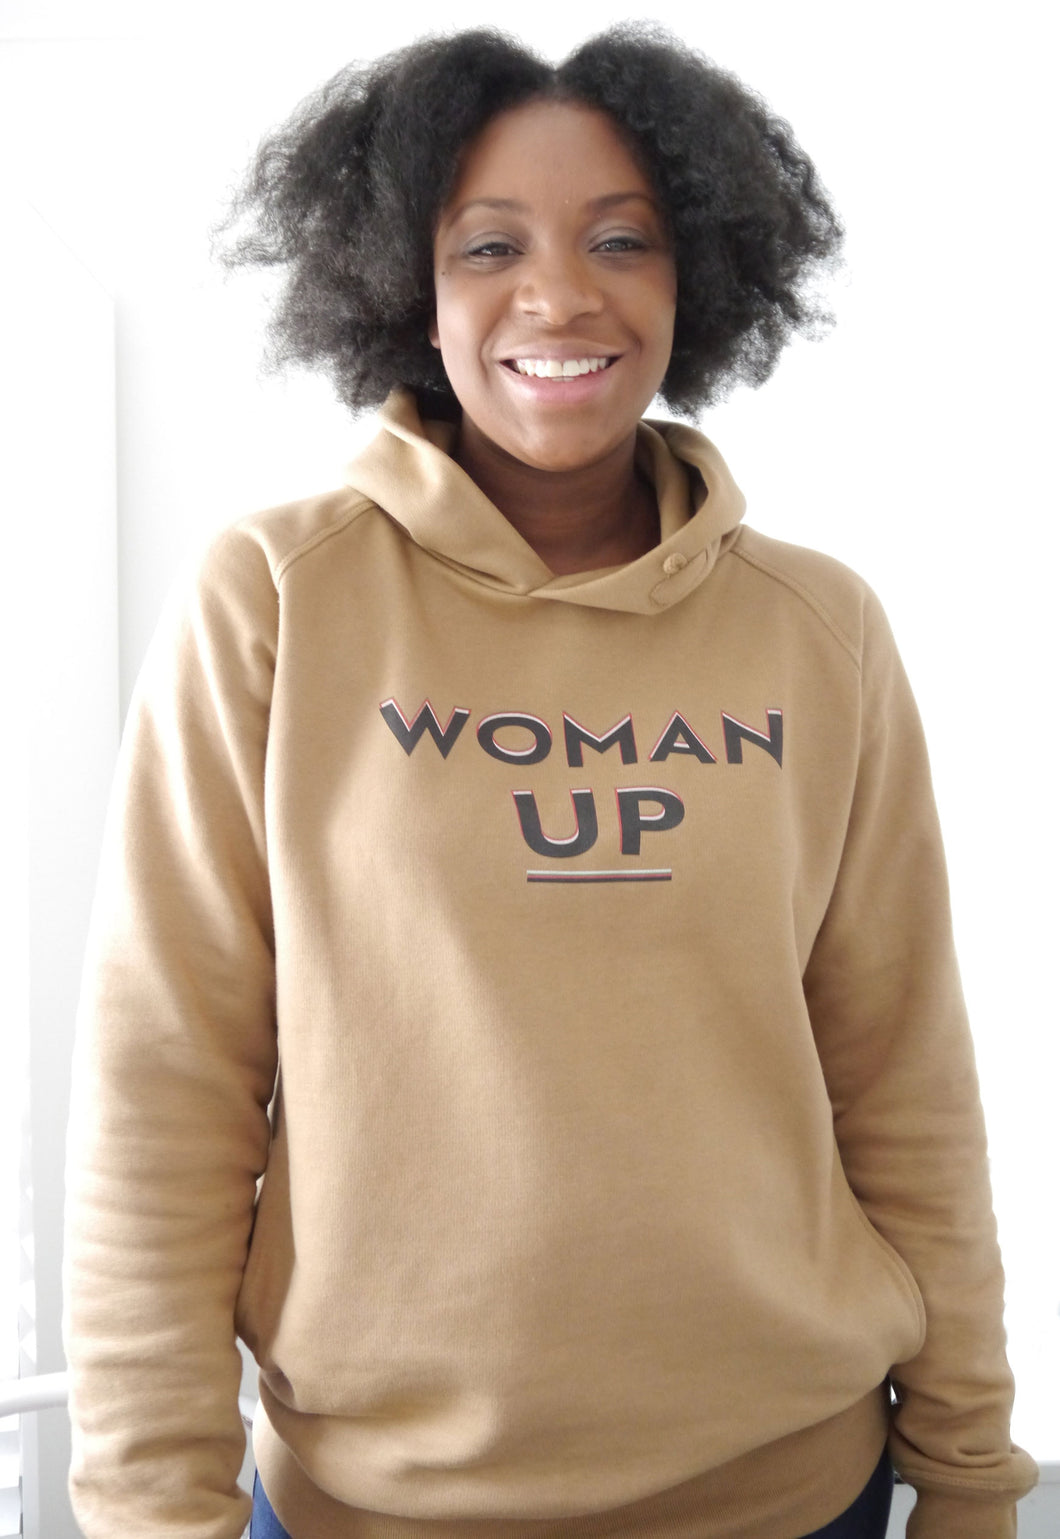 Woman Up Organic Cotton Sweatshirt - Camel